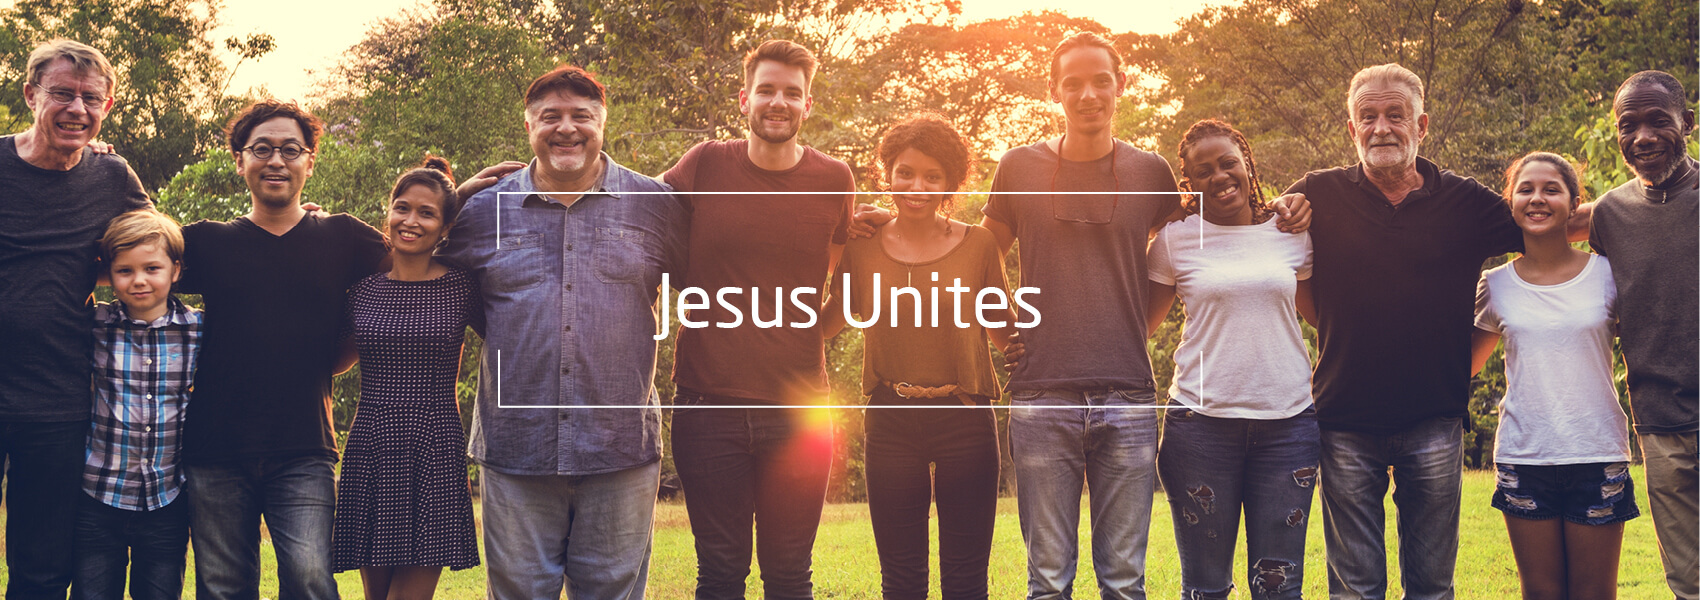 Menschen international Arm in Arm, Text: Jesus Unites